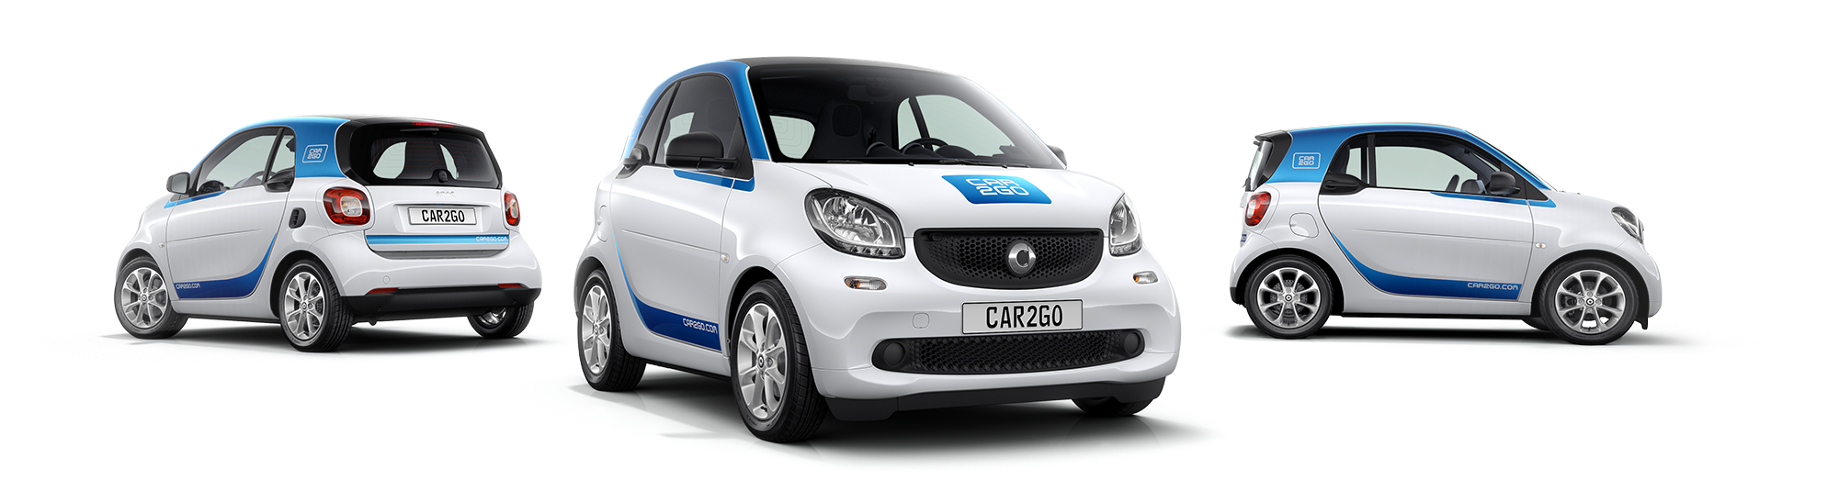 Why Your Marketing Should Be More Like Car2go Next Practice Medium